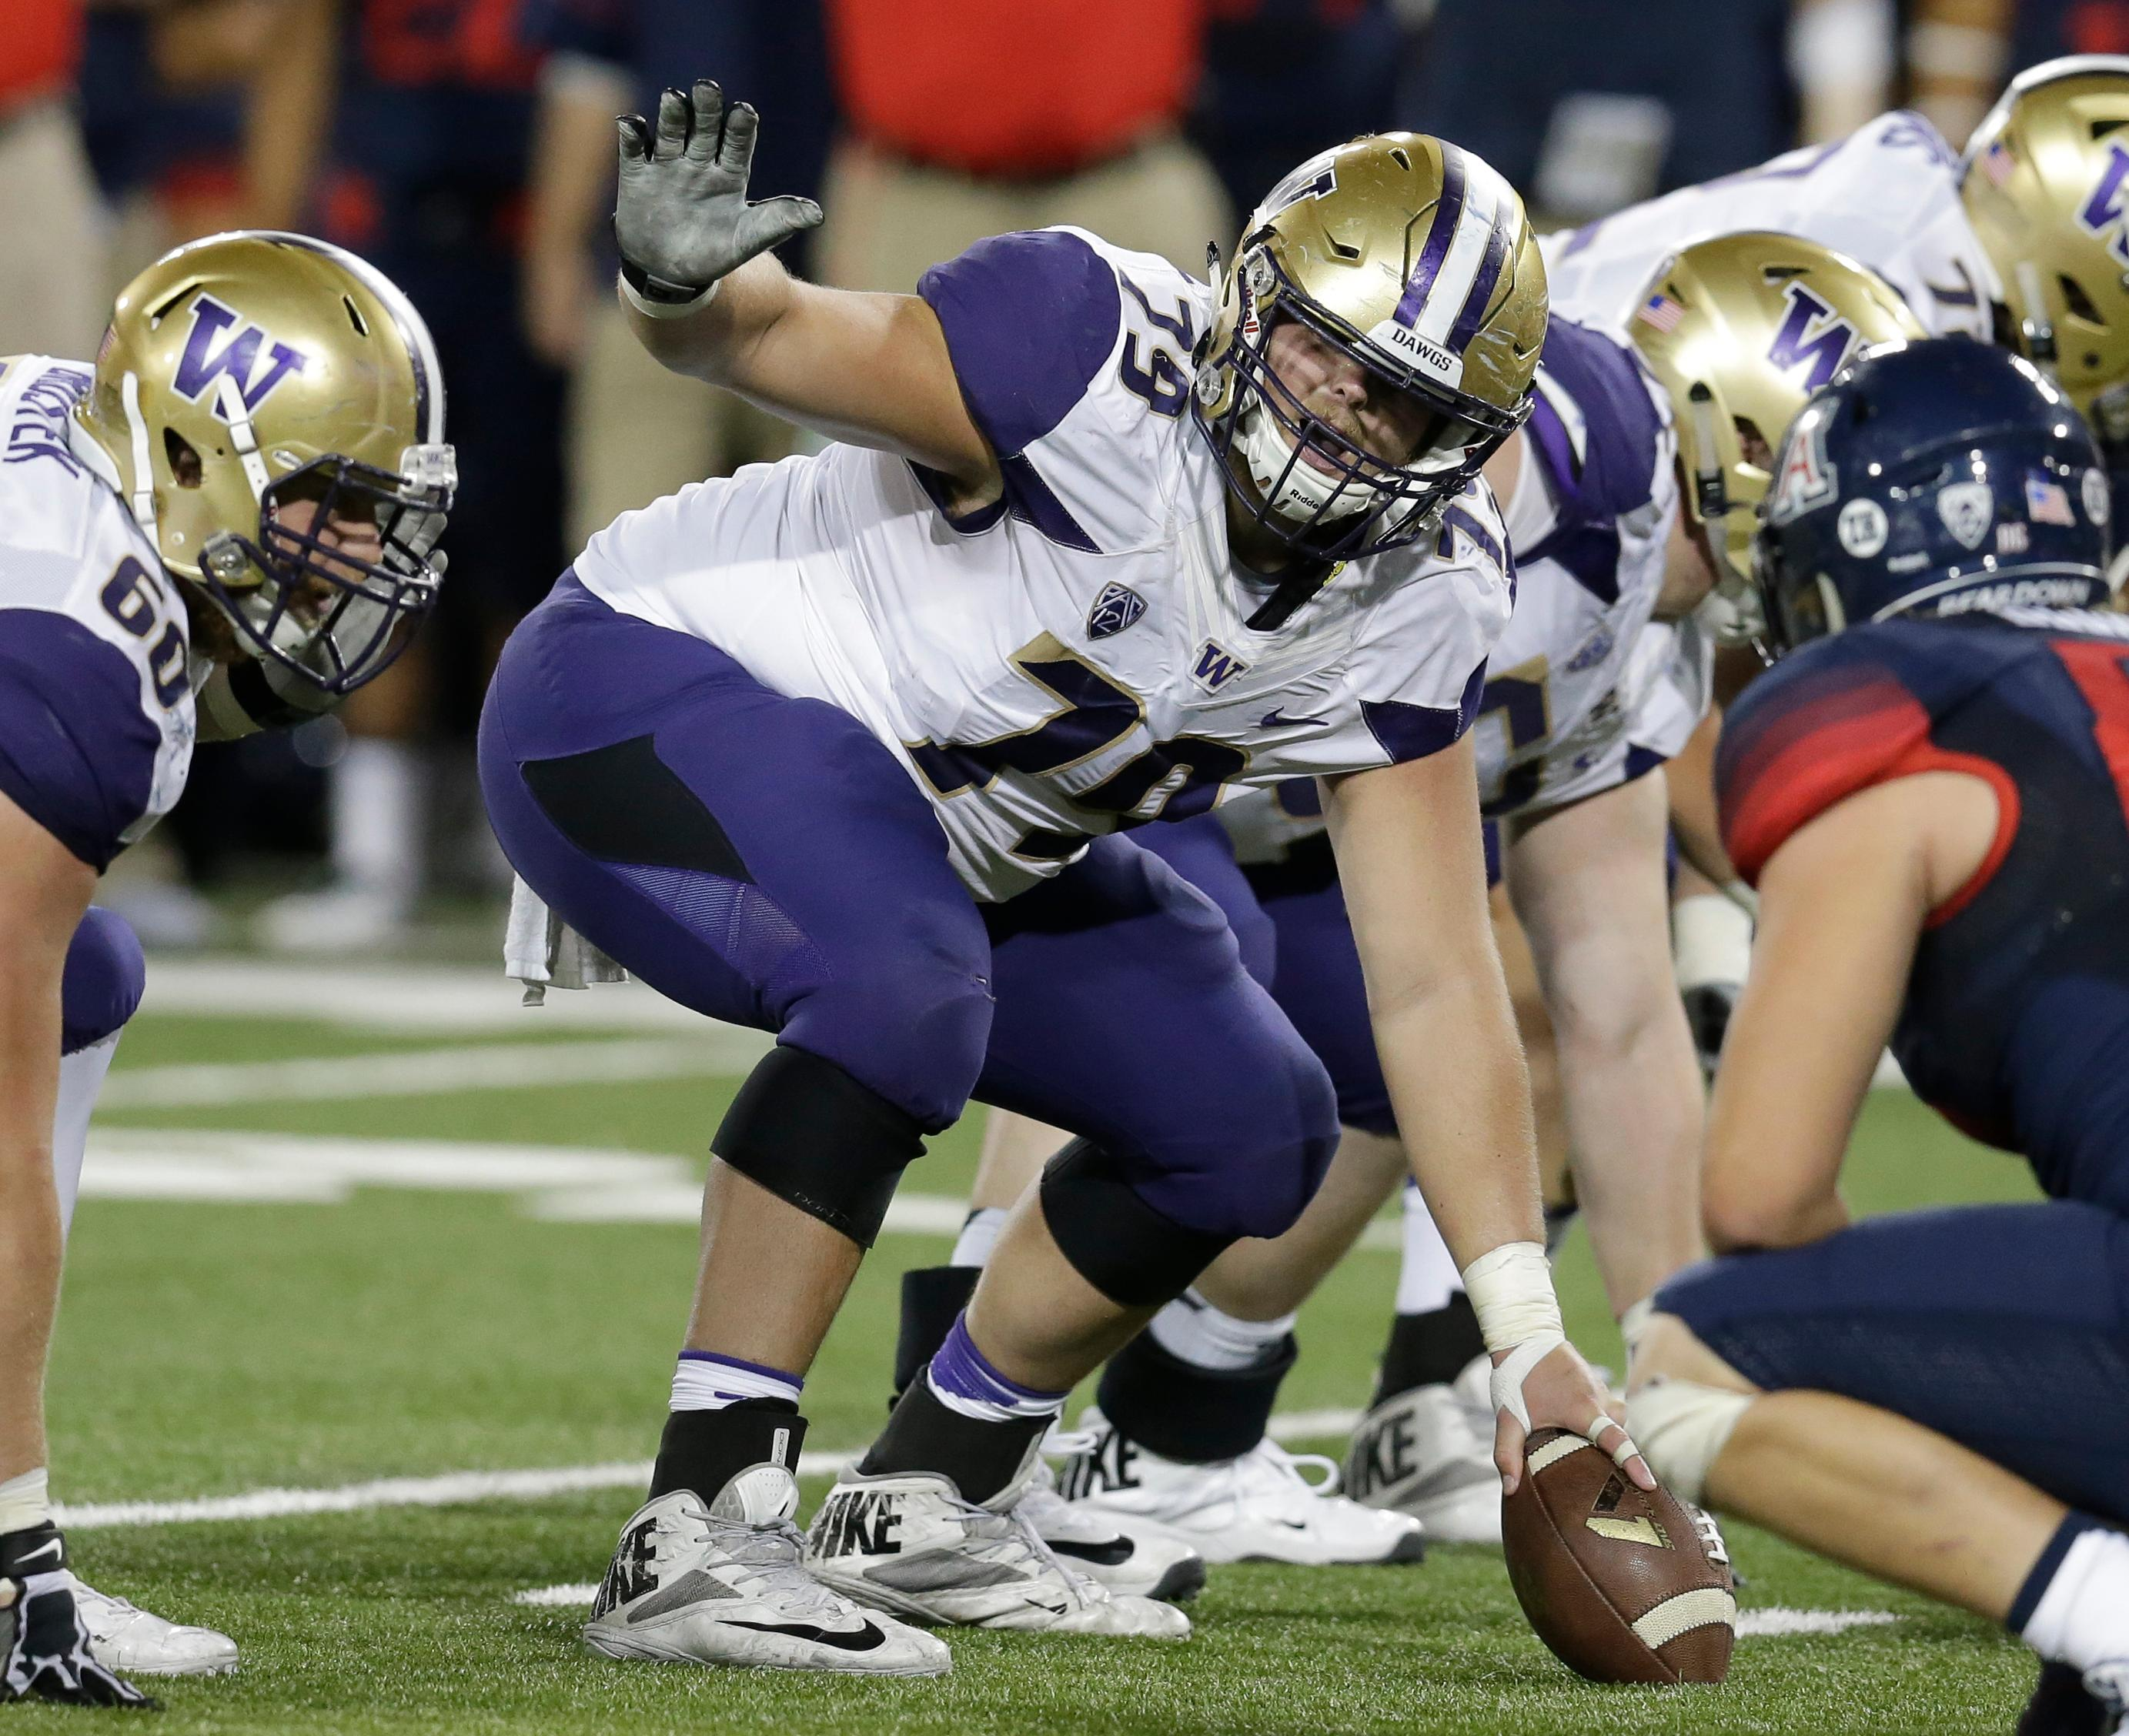 FILE - In this Sept. 24, 2016, file photo, Washington offensive center Coleman Shelton (79) gestures during the first half of an NCAA college football game against Arizona,  in Tucson, Ariz. Shelton was selected to the 2017 AP All-Conference Pac-12 team announced Thursday, Dec. 7, 2017. (AP Photo/Rick Scuteri, File)